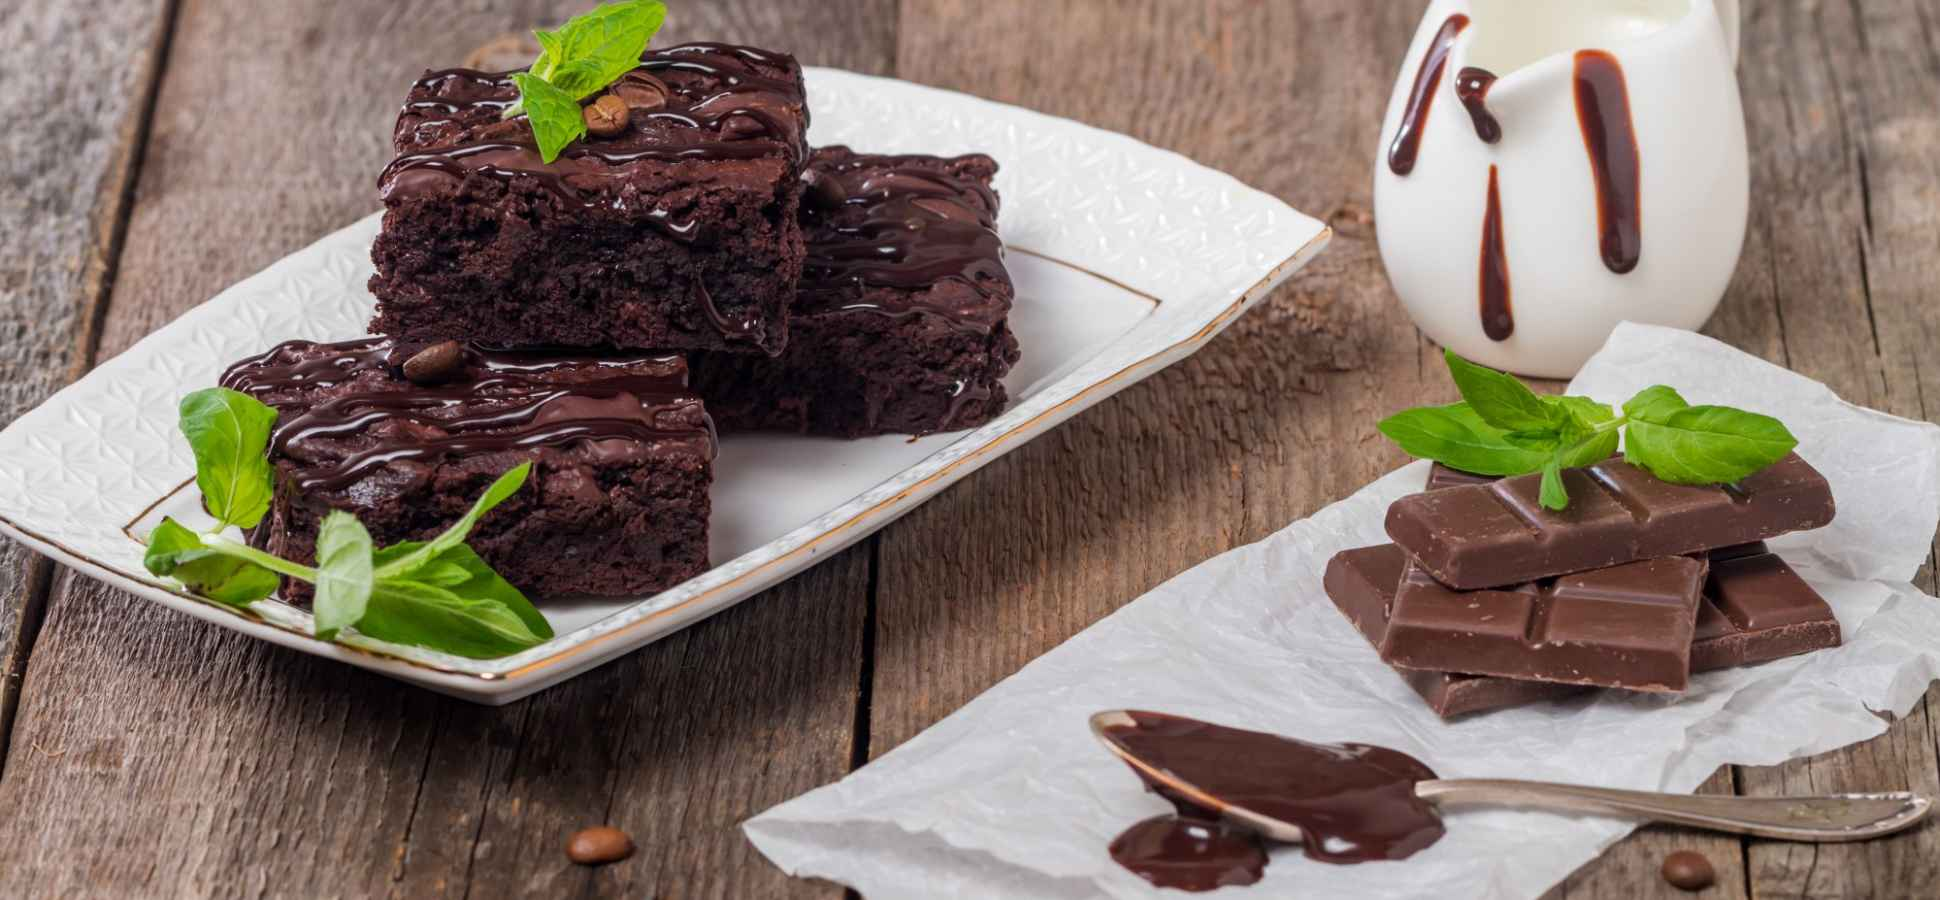 Brownies Made From Veggies? They're Selling Like Hot Cakes!